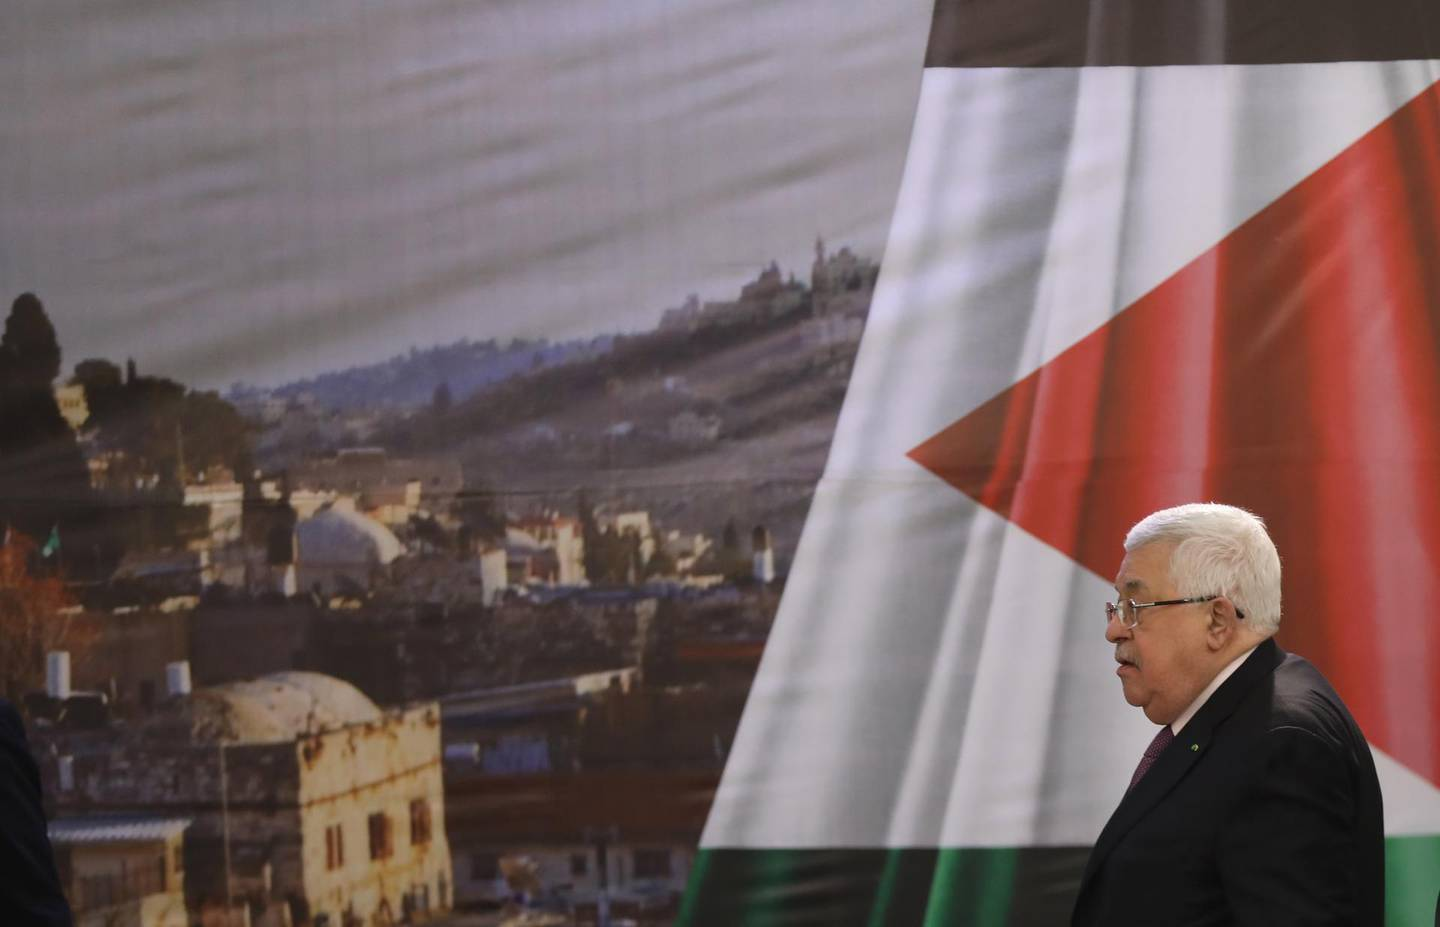 epa08173547 Palestinian President Mahmoud Abbas arrive to deliver his speech in the West Bank city of Ramallah, 28 January 2020. US President Donald J. Trump's Middle East peace plan was rejected by Palestinian leaders, having withdrawn from engagement with the White House after Trump recognized Jerusalem as the capital of Israel. The proposal was announced while Netanyahu and his political rival, Benny Gantz, both visit Washington, DC.  EPA/ALAA BADARNEH